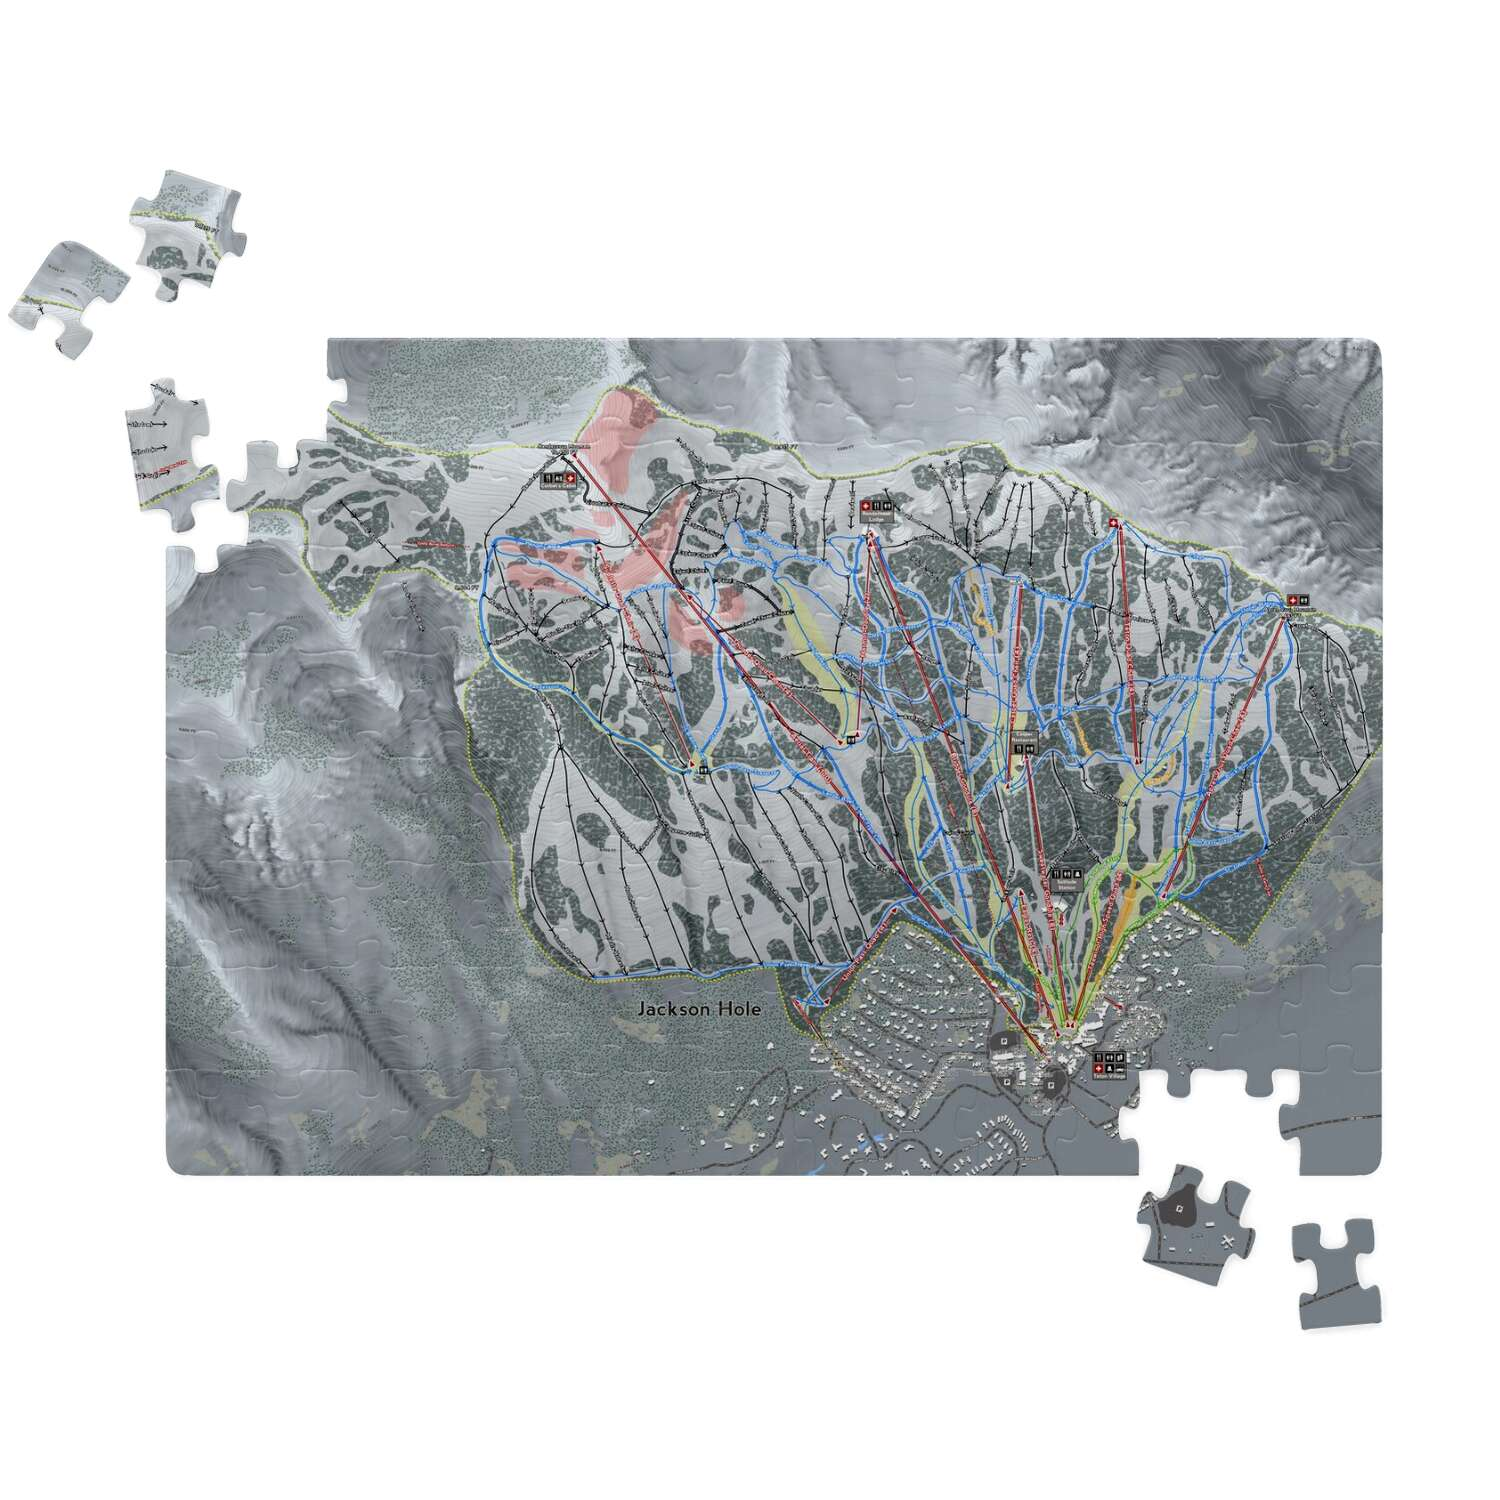 Jackson Hole, Wyoming Ski Resort Map Puzzle